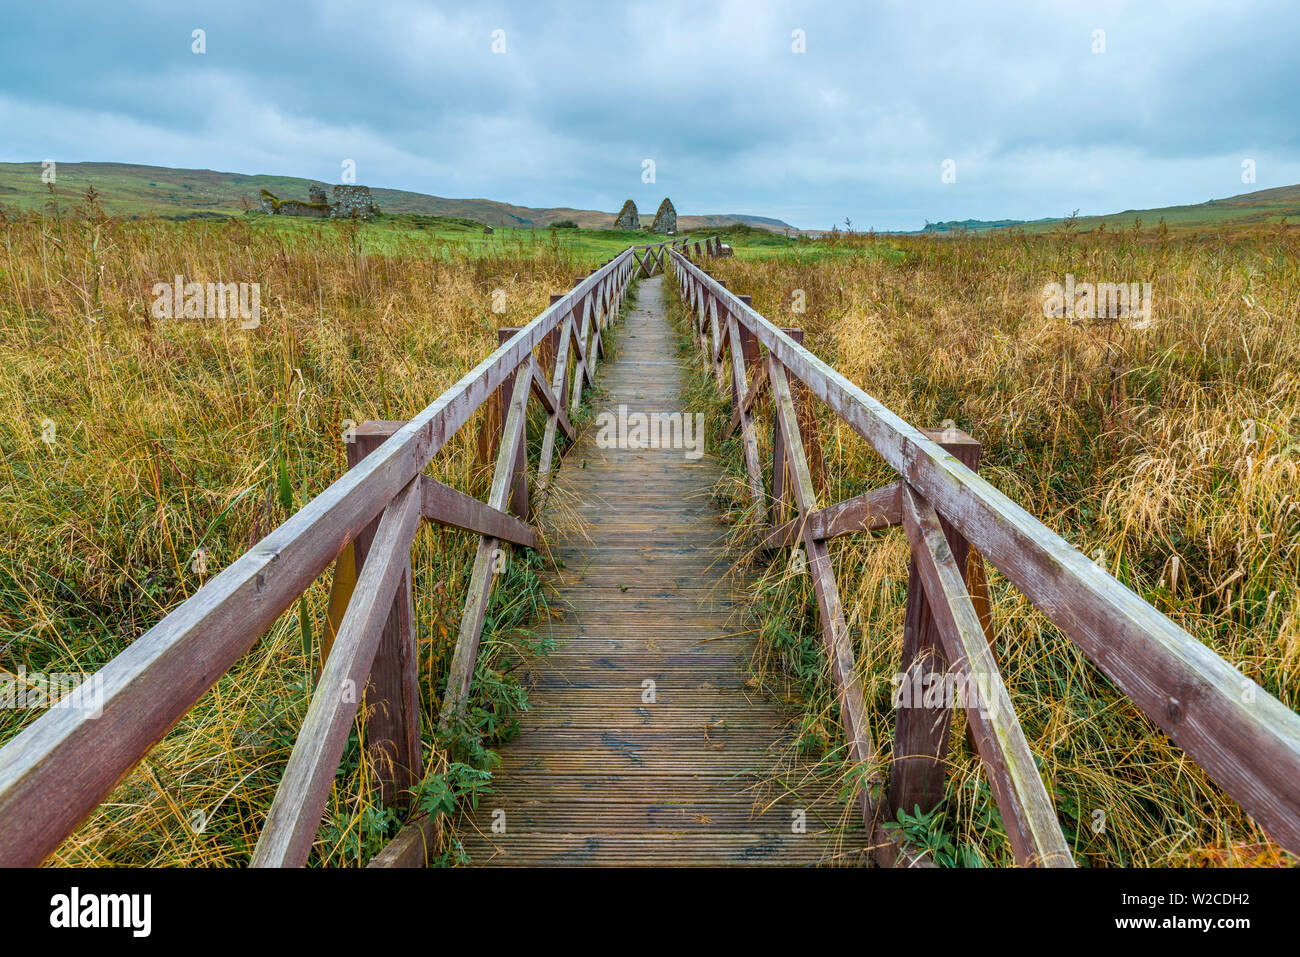 UK, Scotland, Argyll and Bute, Islay,  Loch Finlaggan, Boardwalk to Eilean Mor (Large Island), centre of the Lordship of the Isles and Clan Macdonald Stock Photo